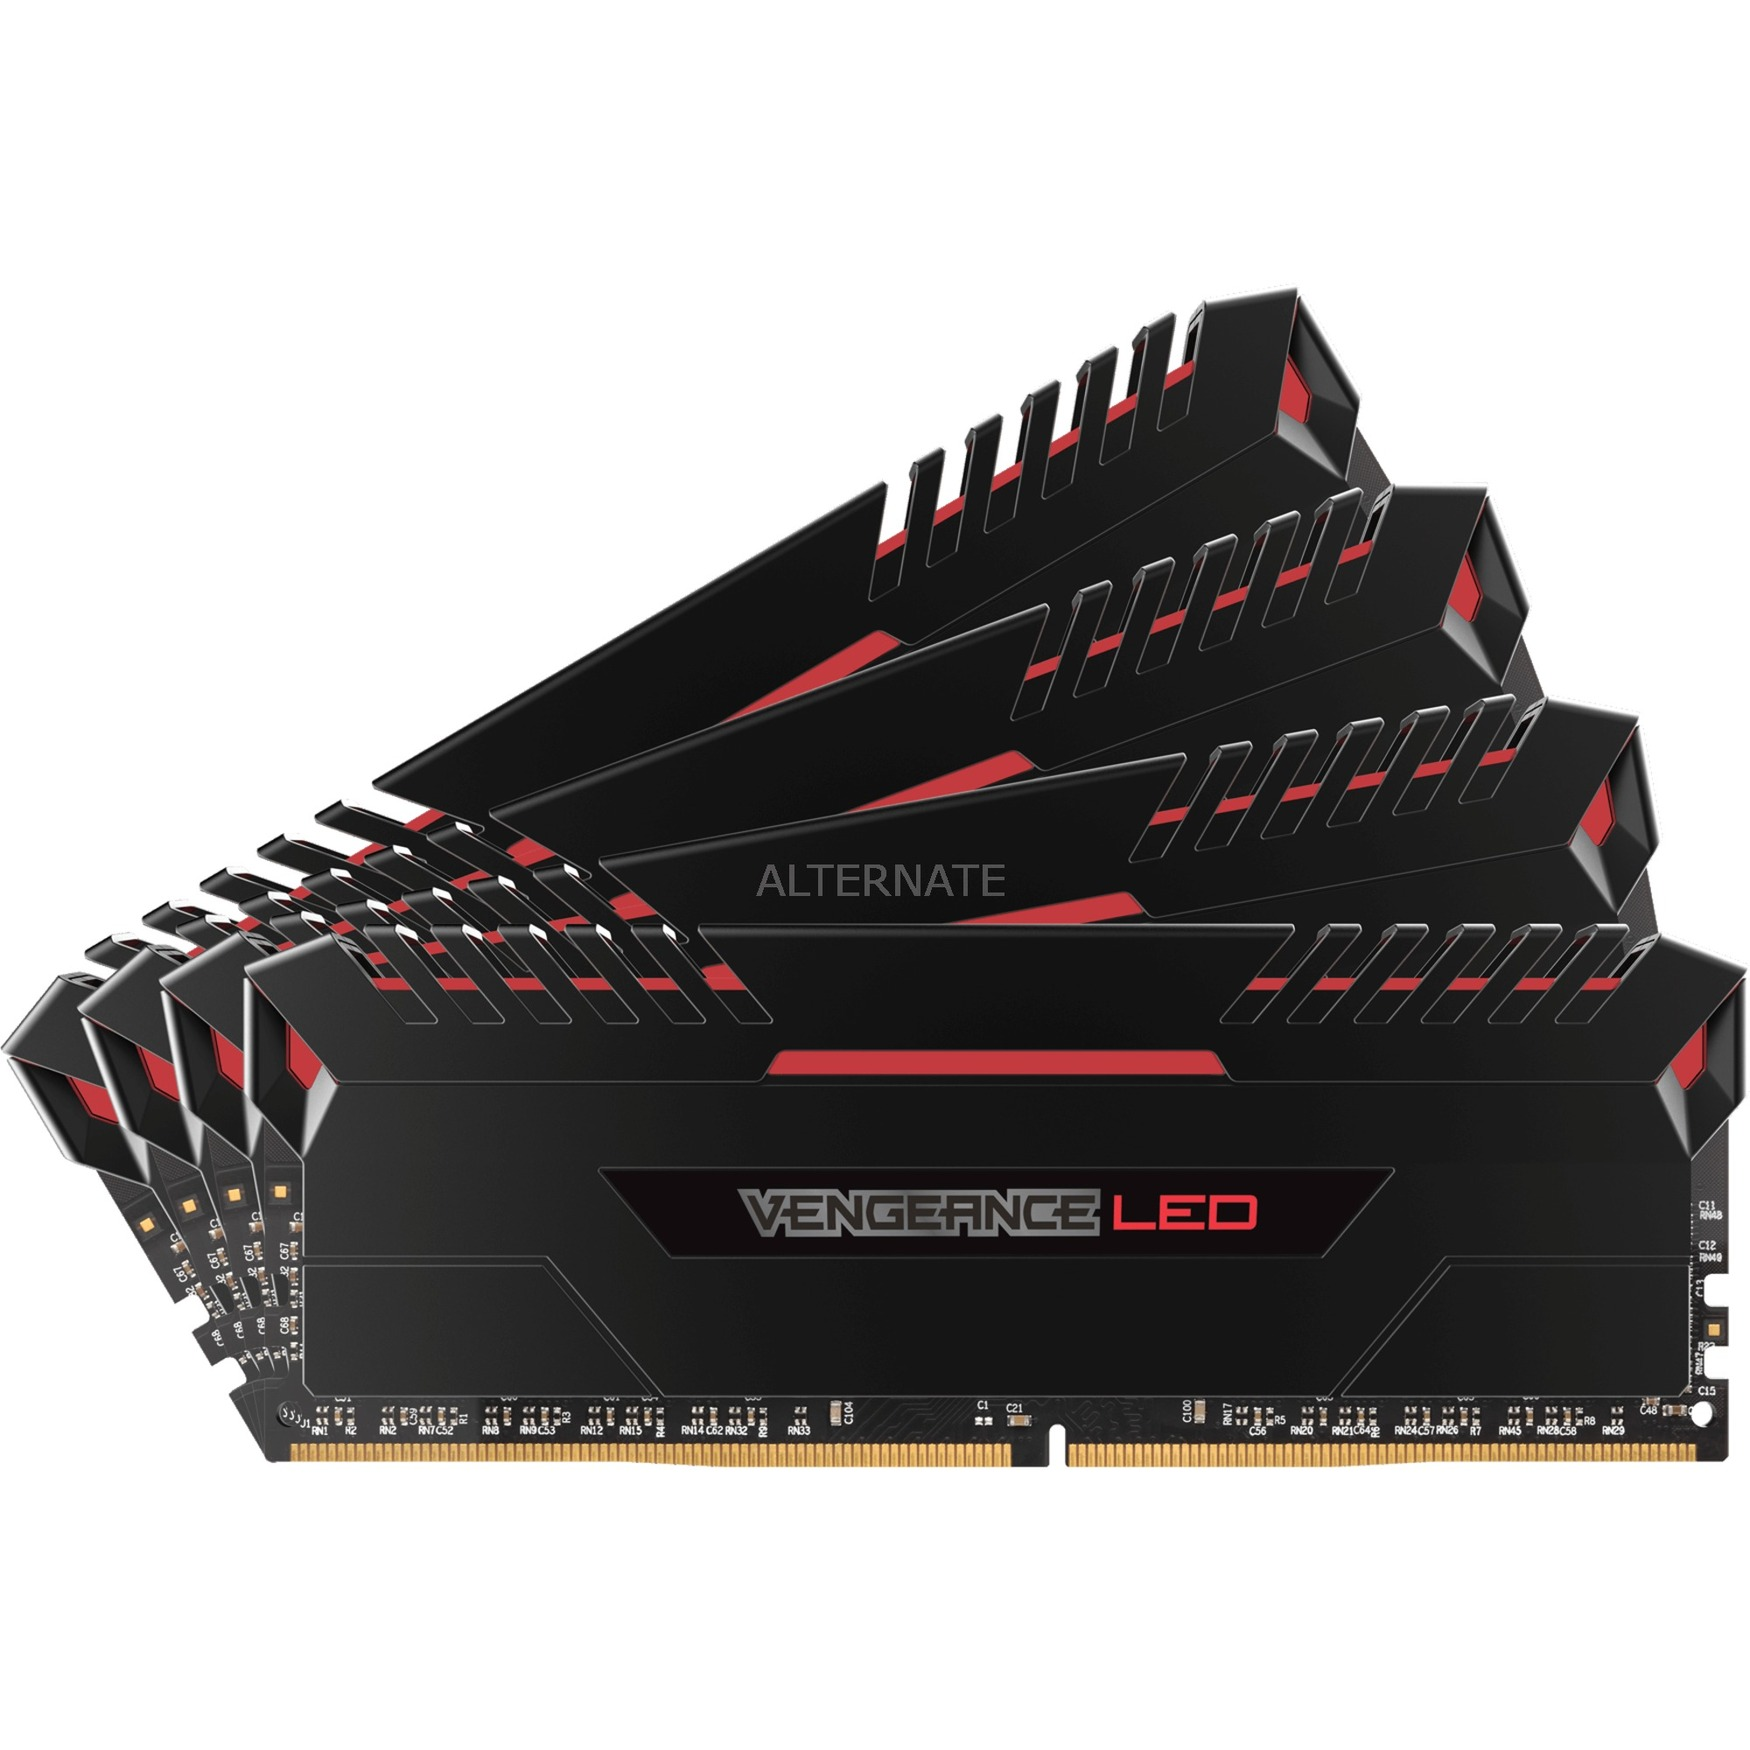 LED 4x8GB DDR4-3000